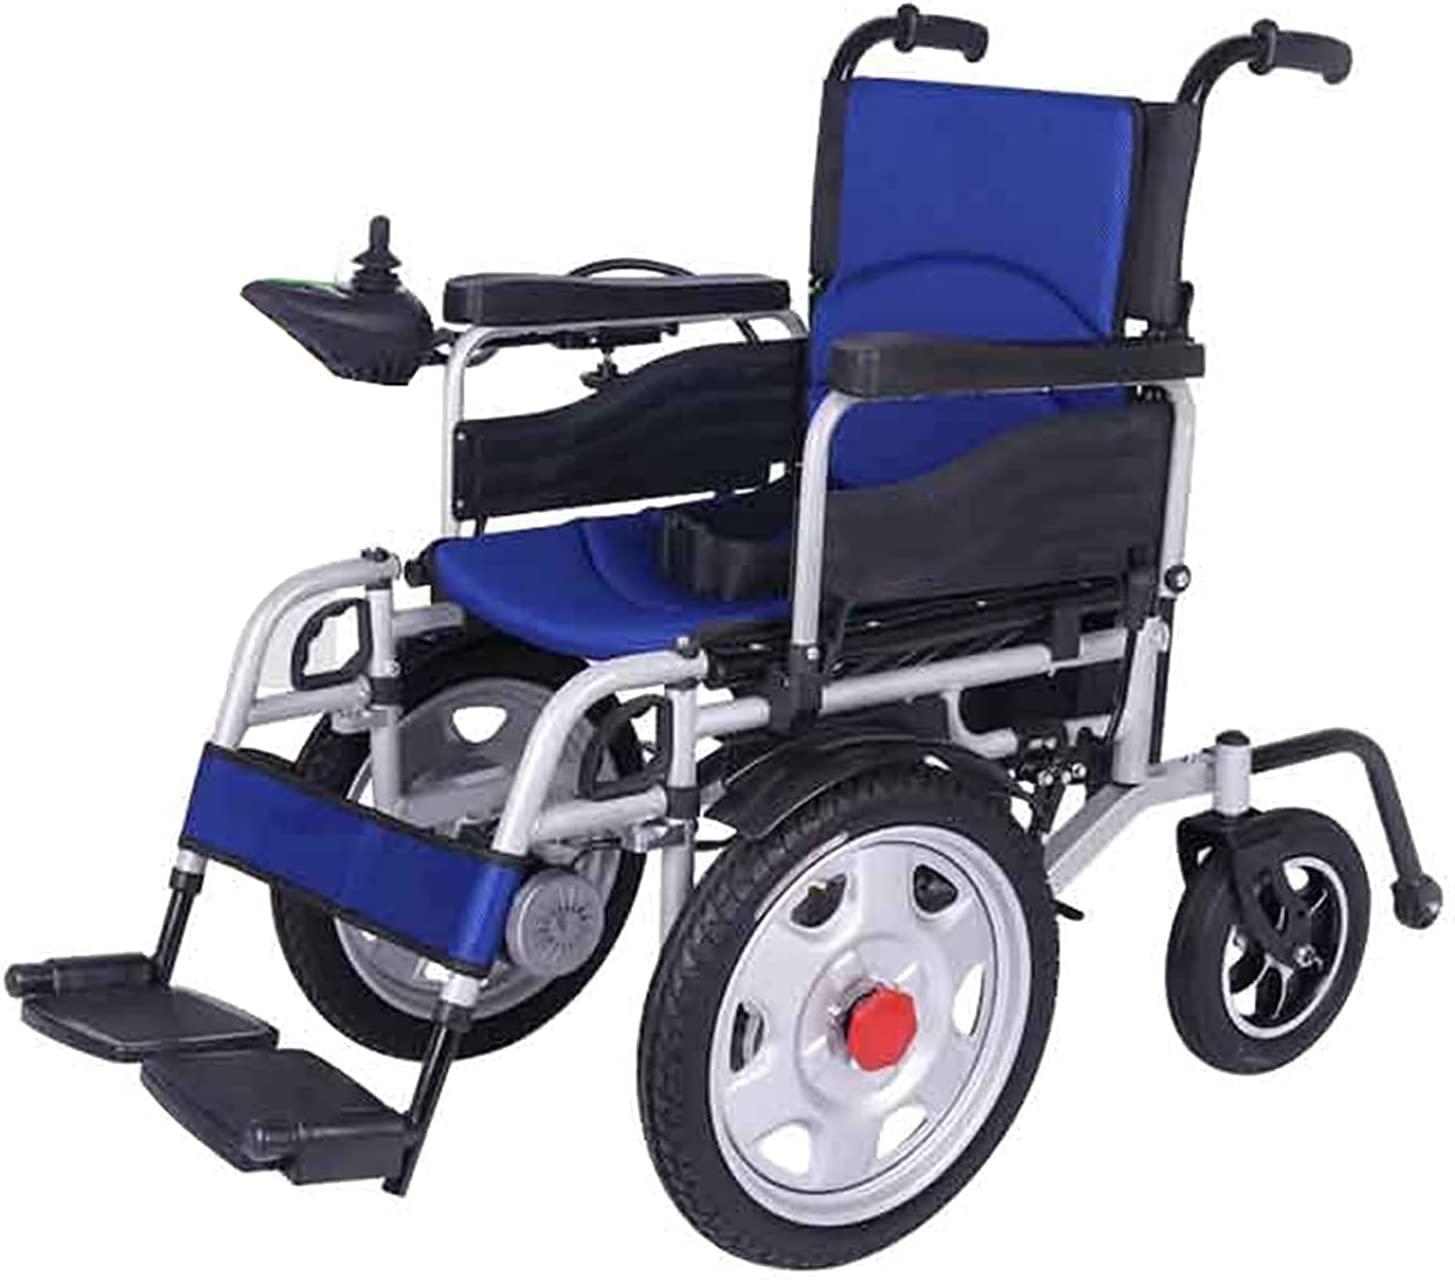 Electric Wheelchair Double Motor Front Wheel Free shipfree Shipping New Big Bre Comfortable